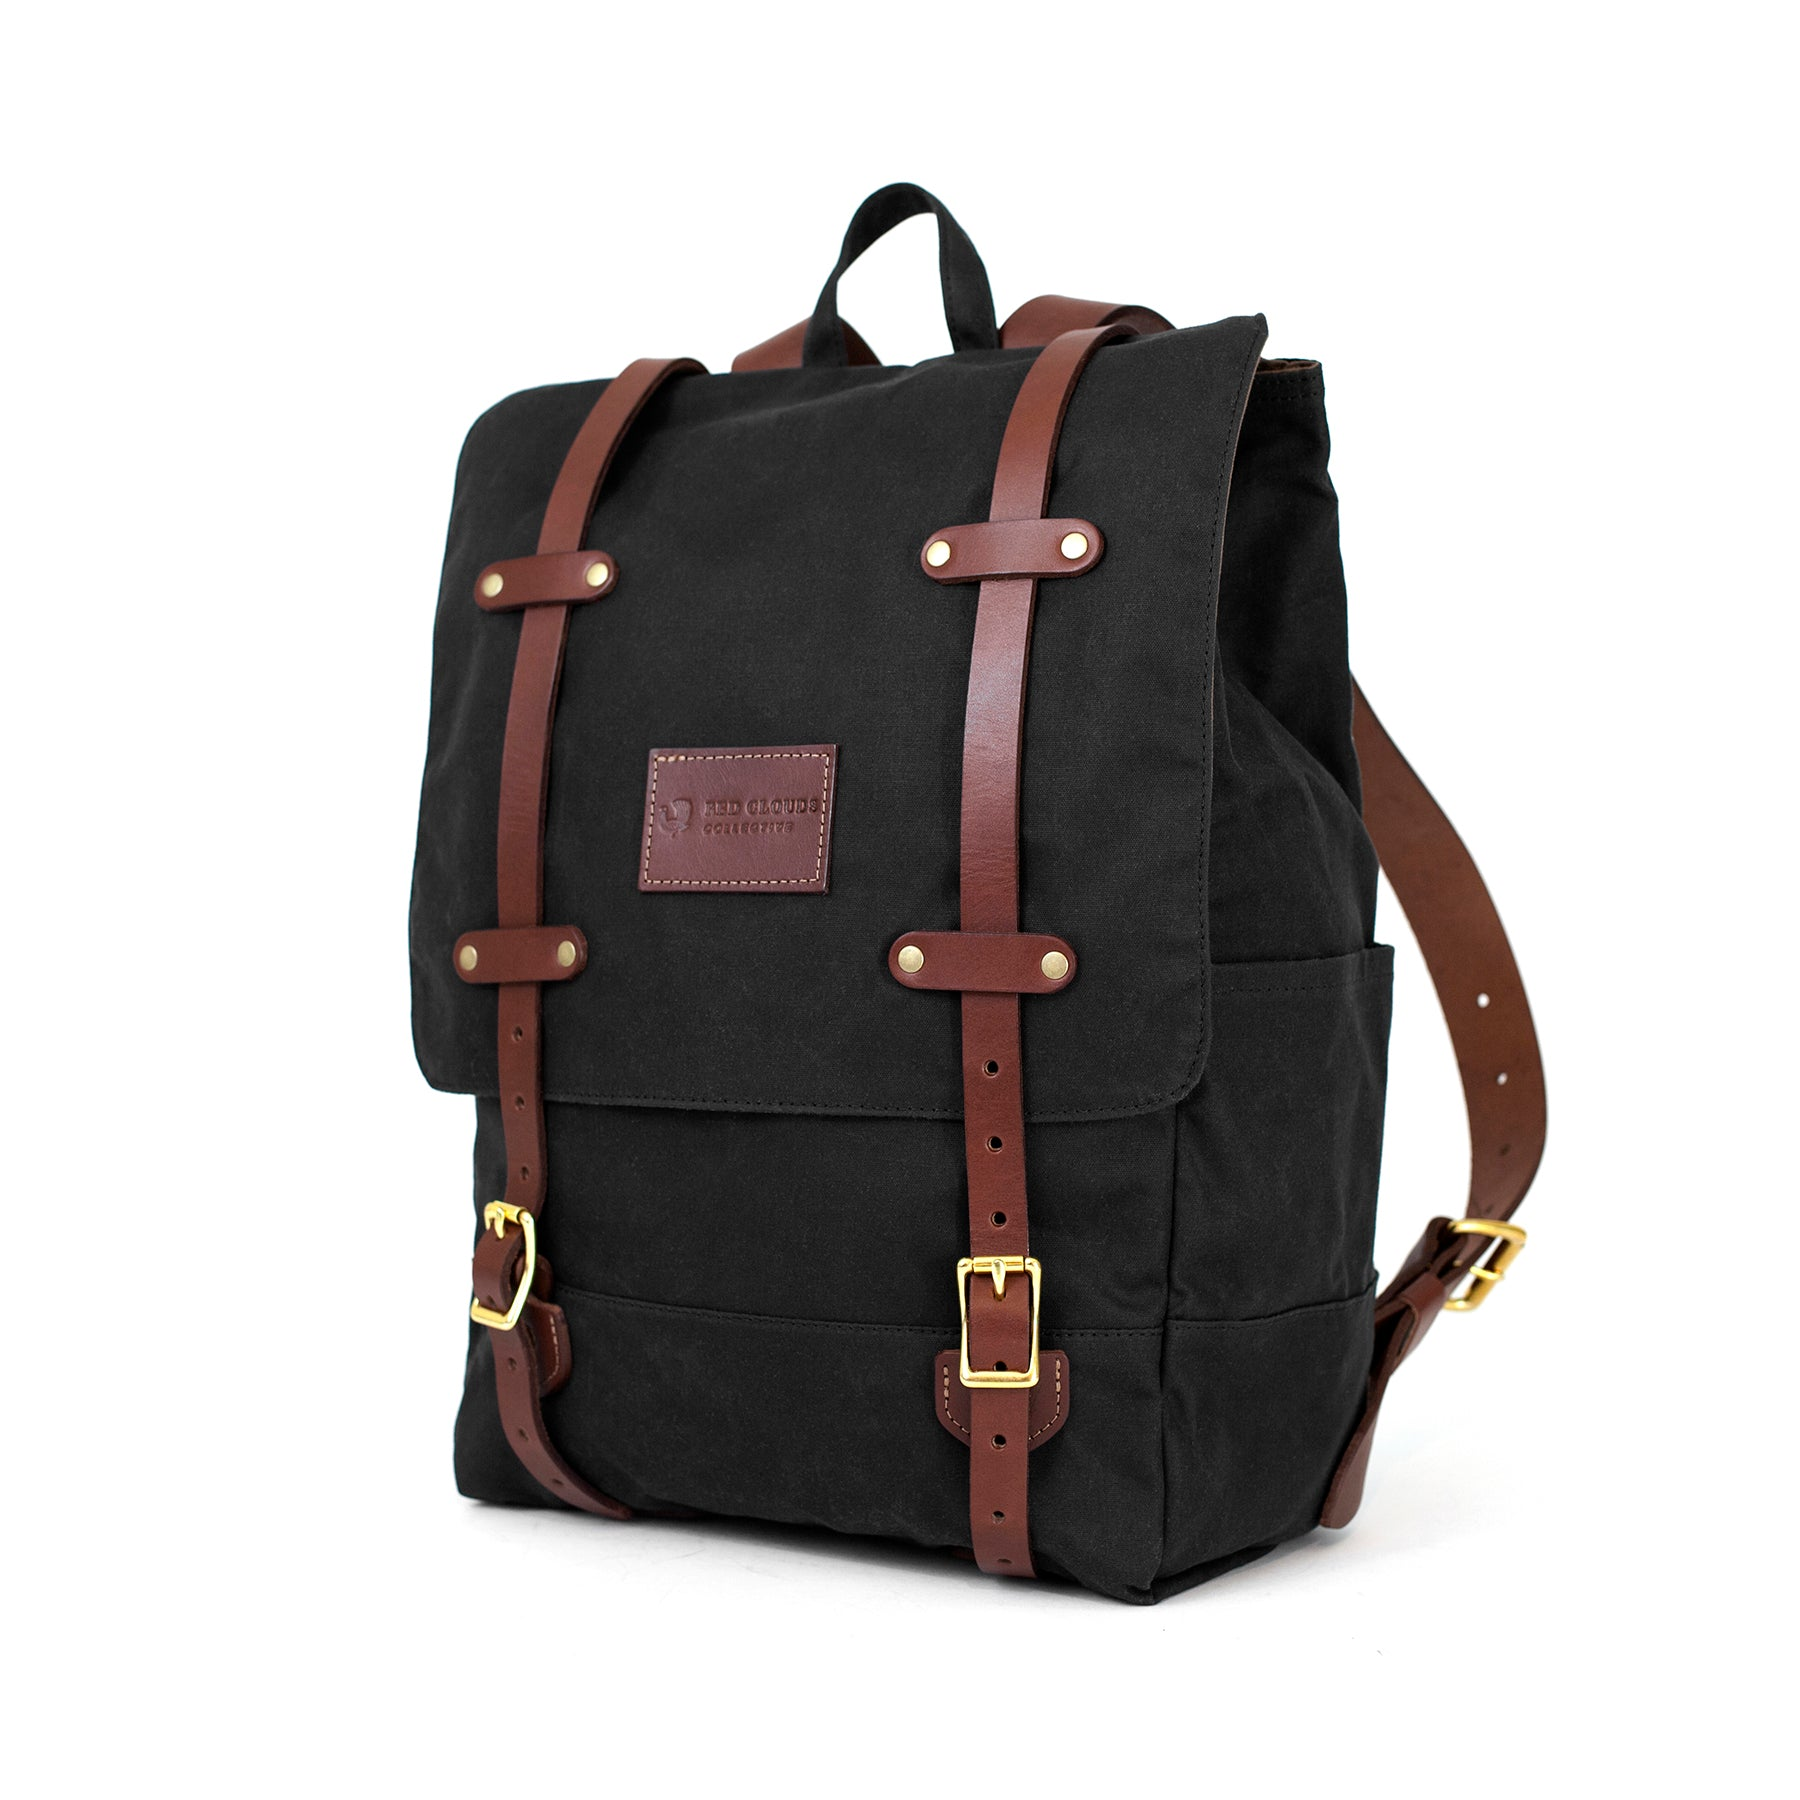 Waxed Canvas Backpack, made in usa, backpack, rucksack, bag, waxed bag, leather straps, quality backpack, red clouds collective, backpack